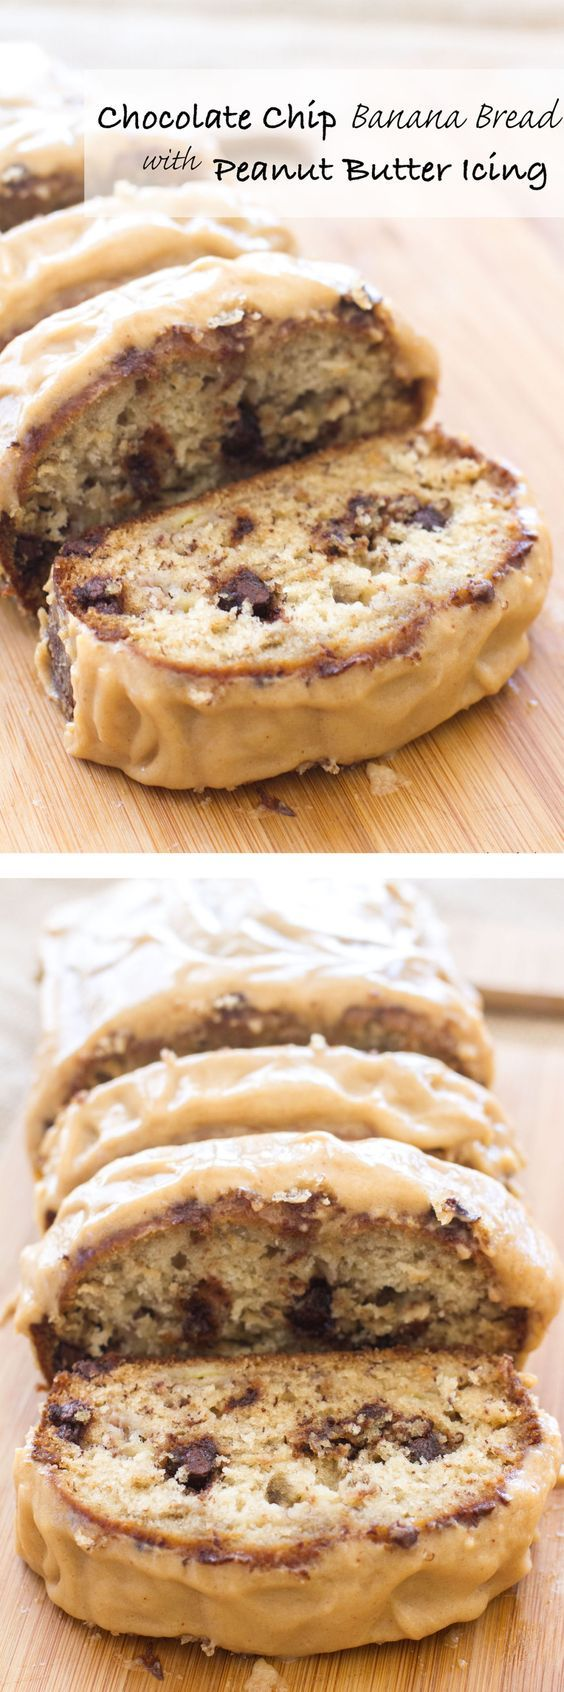 Chocolate Chip Banana Bread with Peanut Butter Icing|